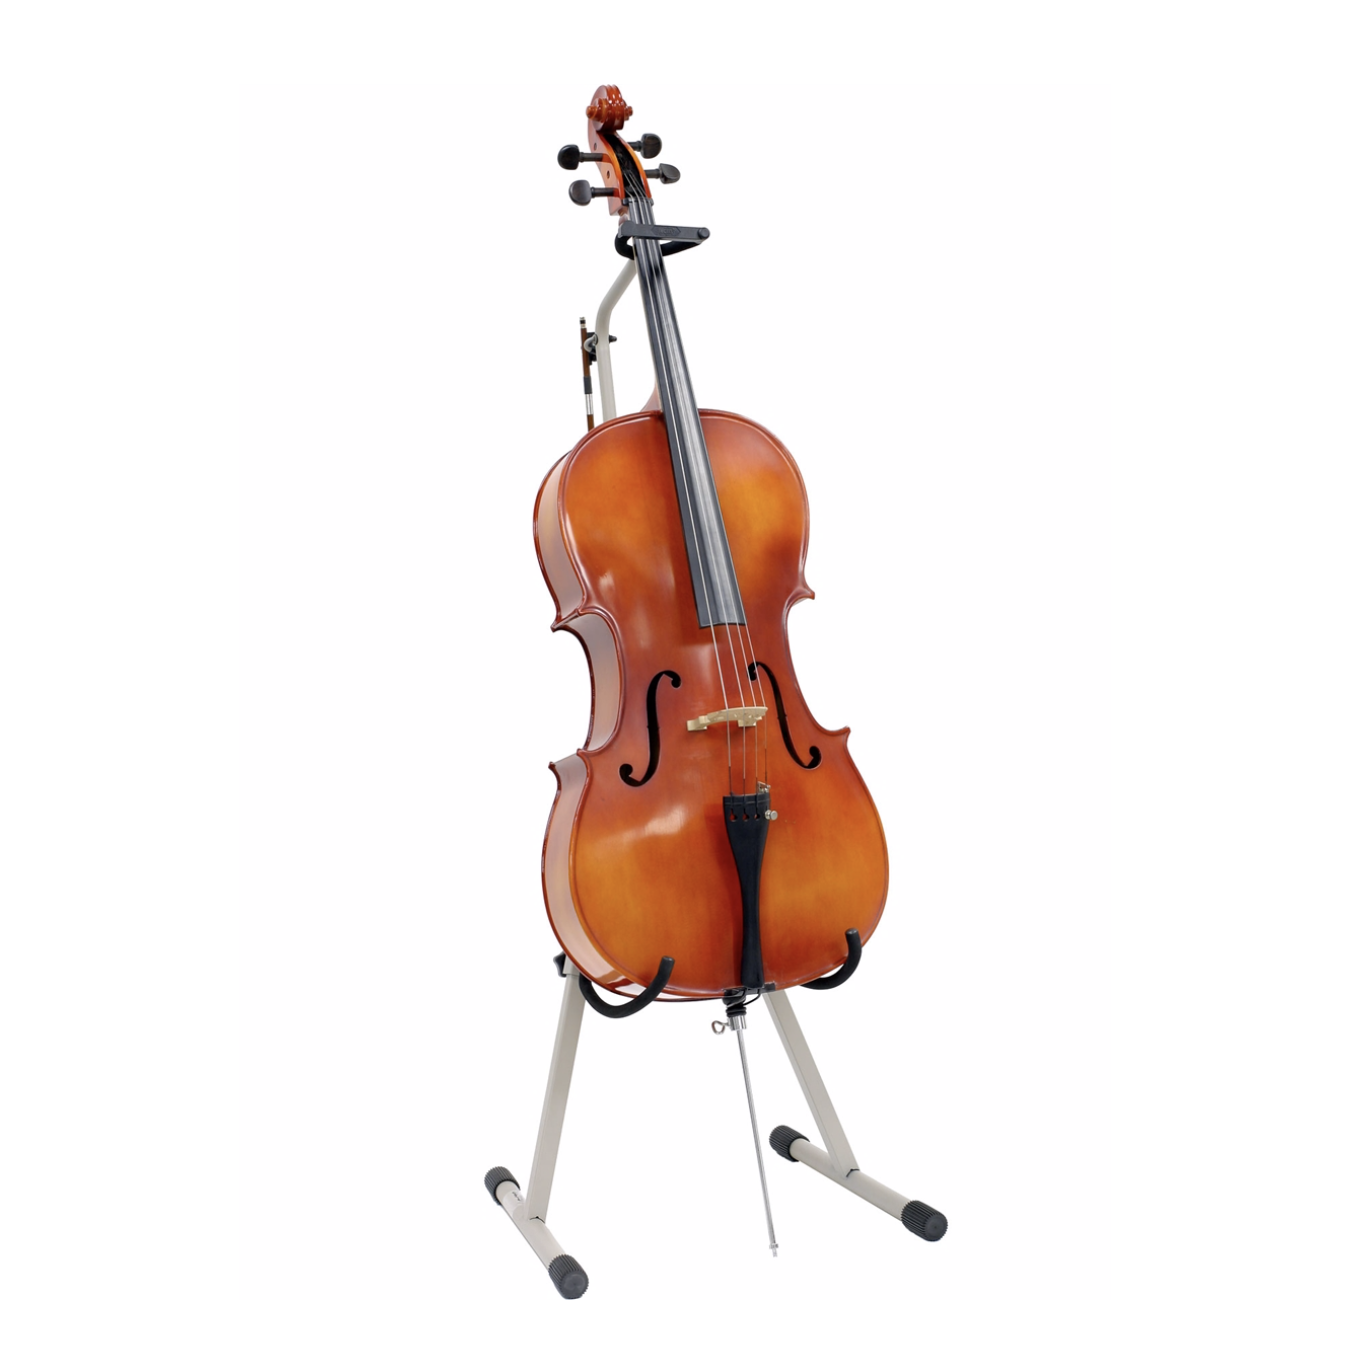 Protec - Ingles Cello/Bass Stand-Accessories-Protec-Music Elements